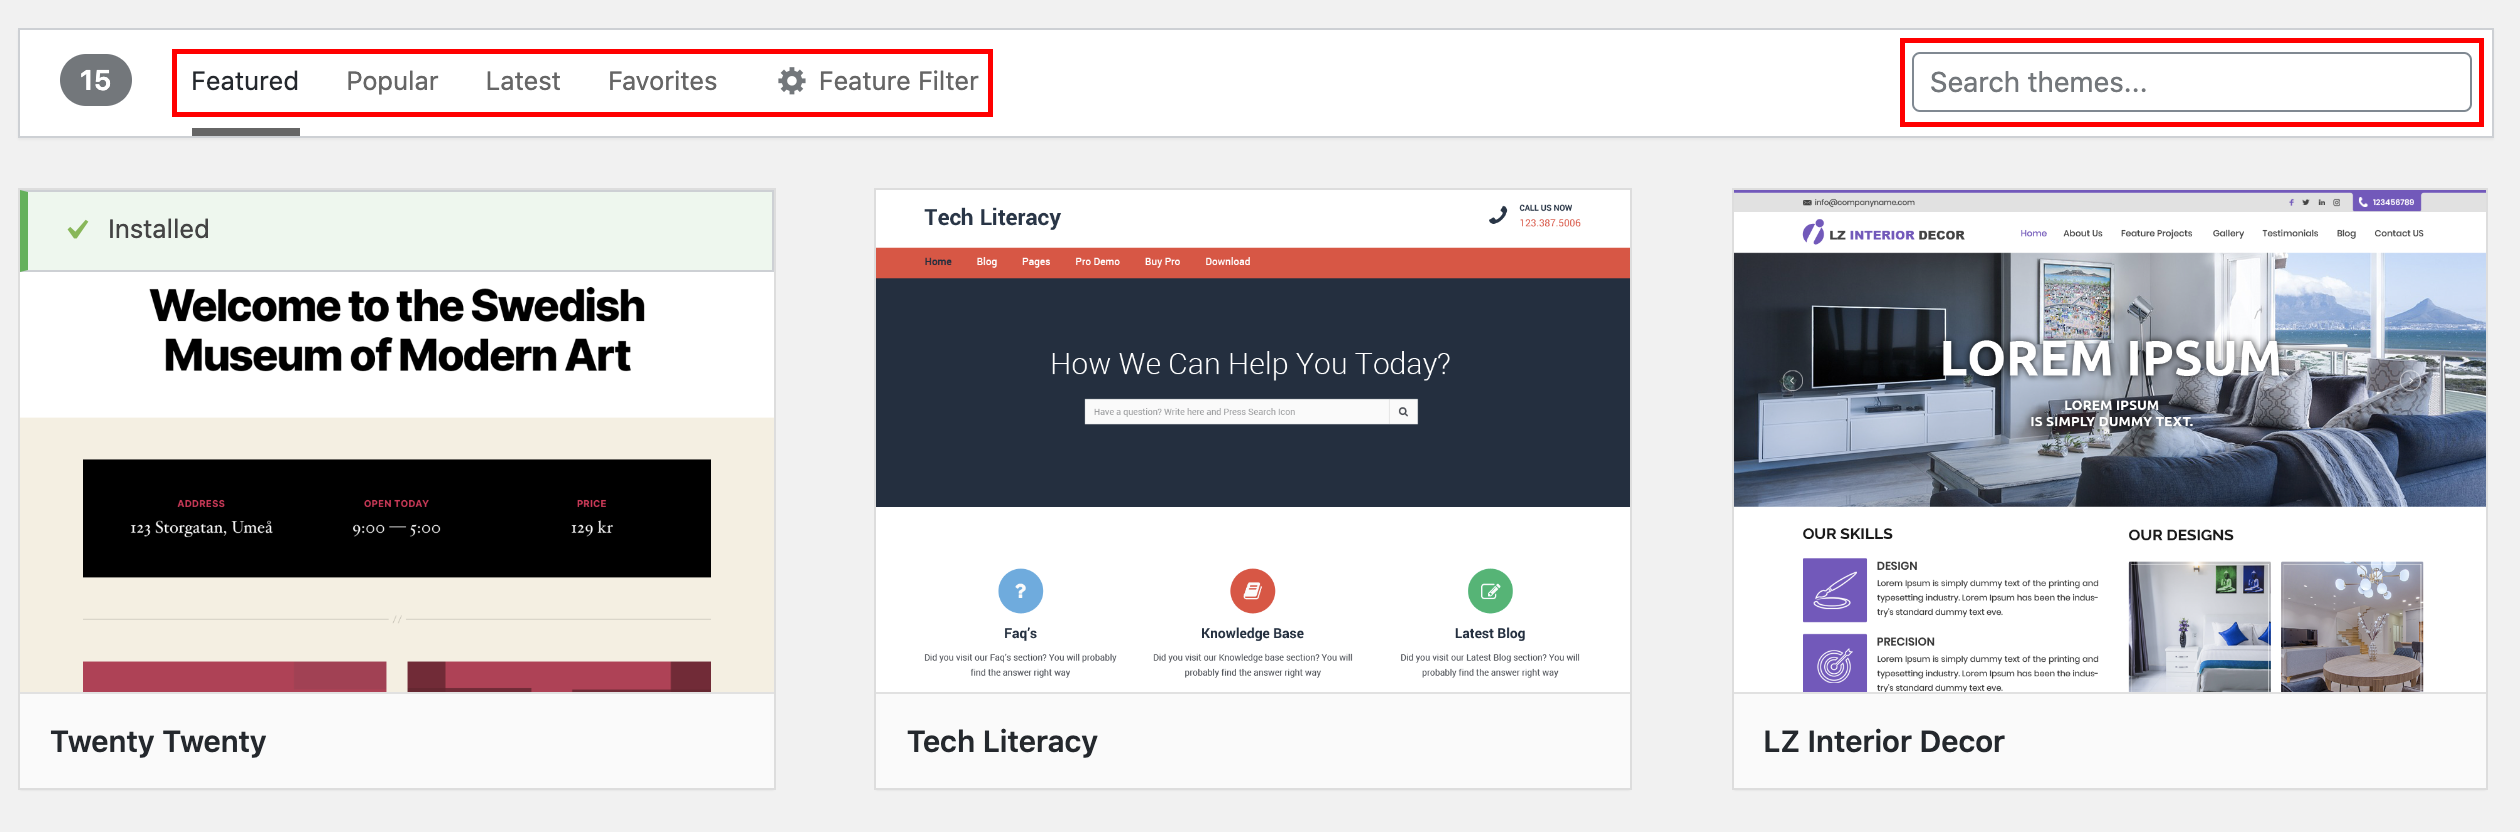 Search new themes for your blog